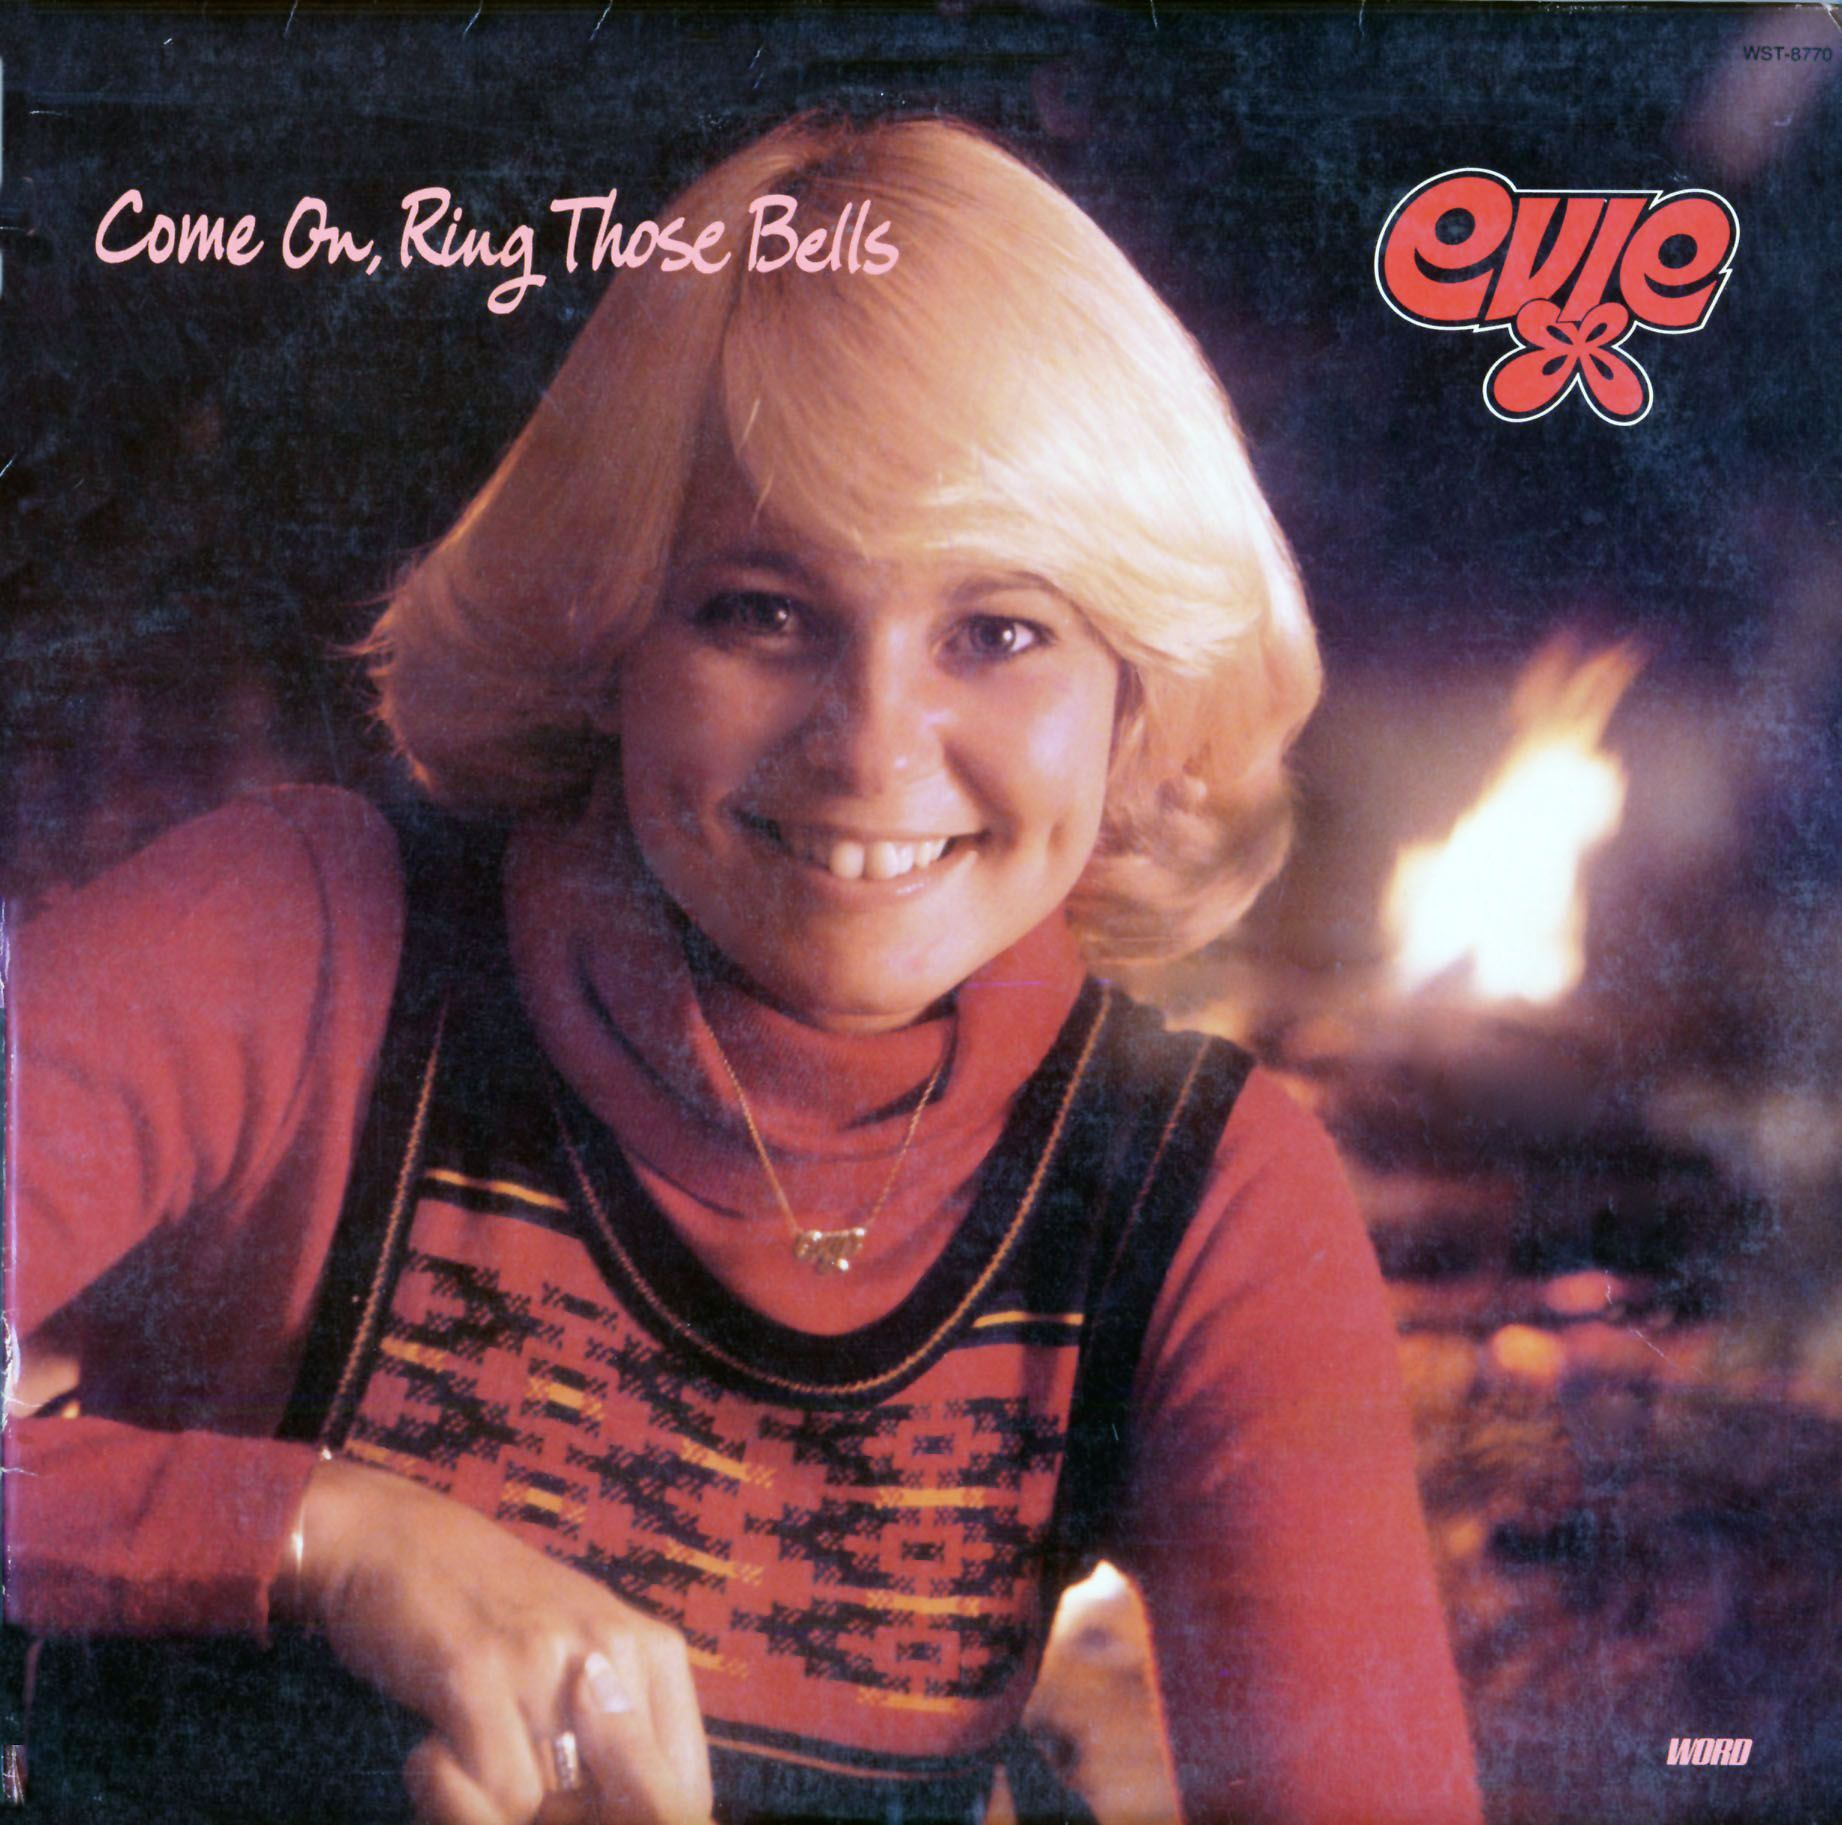 MP3 Download 320kbps. Tornquist, Evie Come On, Ring Those